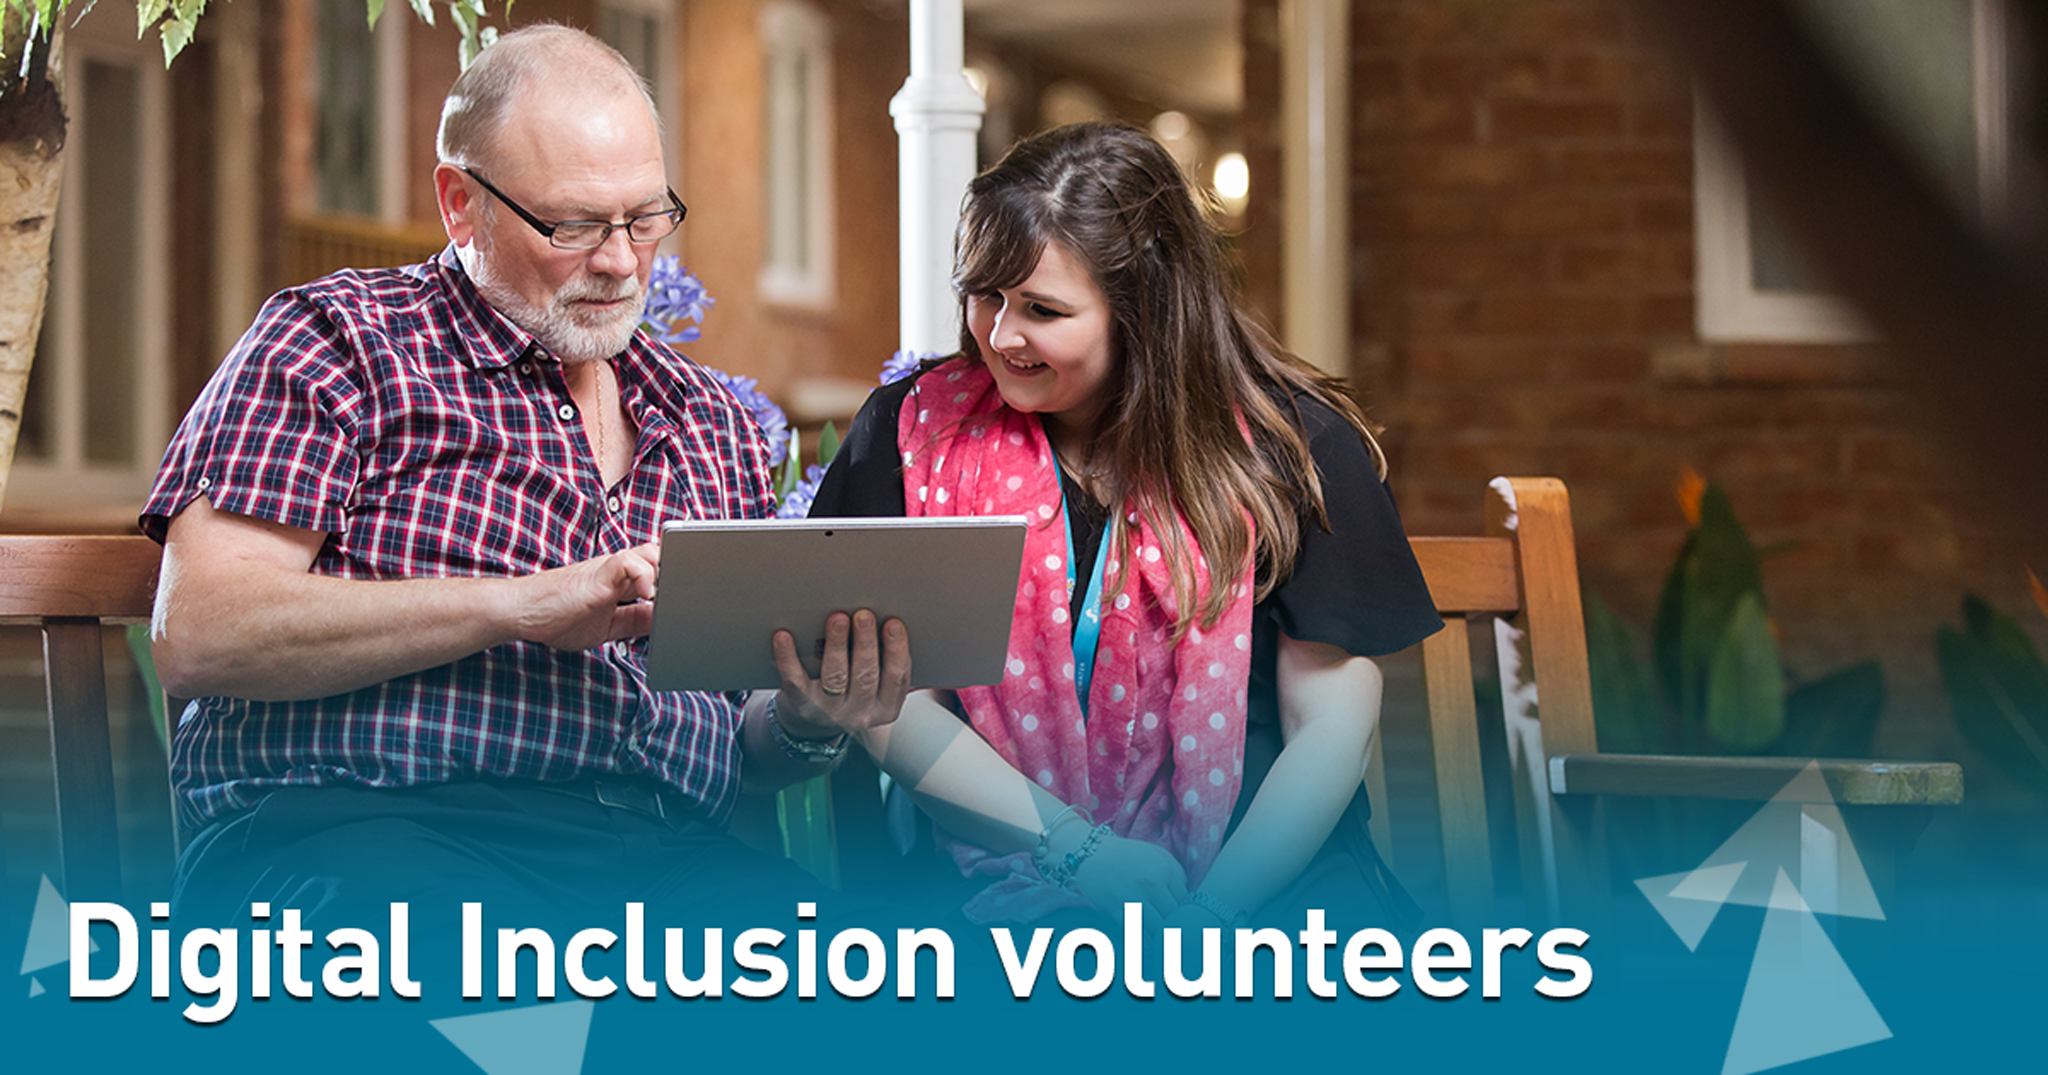 Digital Inclusion volunteers